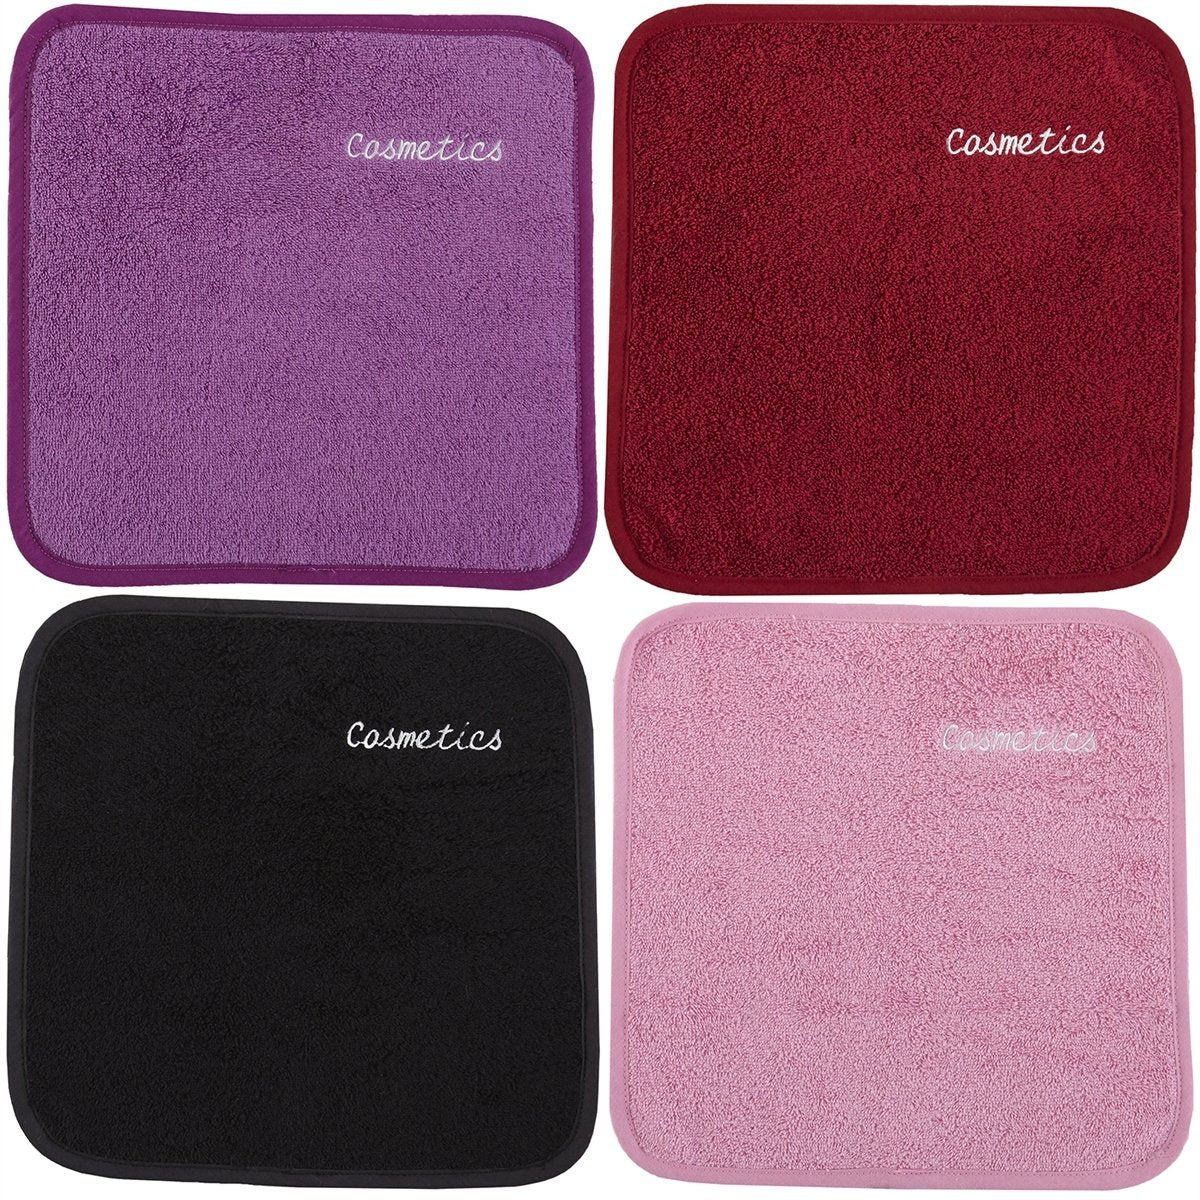 "Parador® Chic Embroidered Cosmetics Removal Facecloths Set of 4, Embroidered Makeup Towels 13"" x 13"", 100% Pure Turkish Cotton"